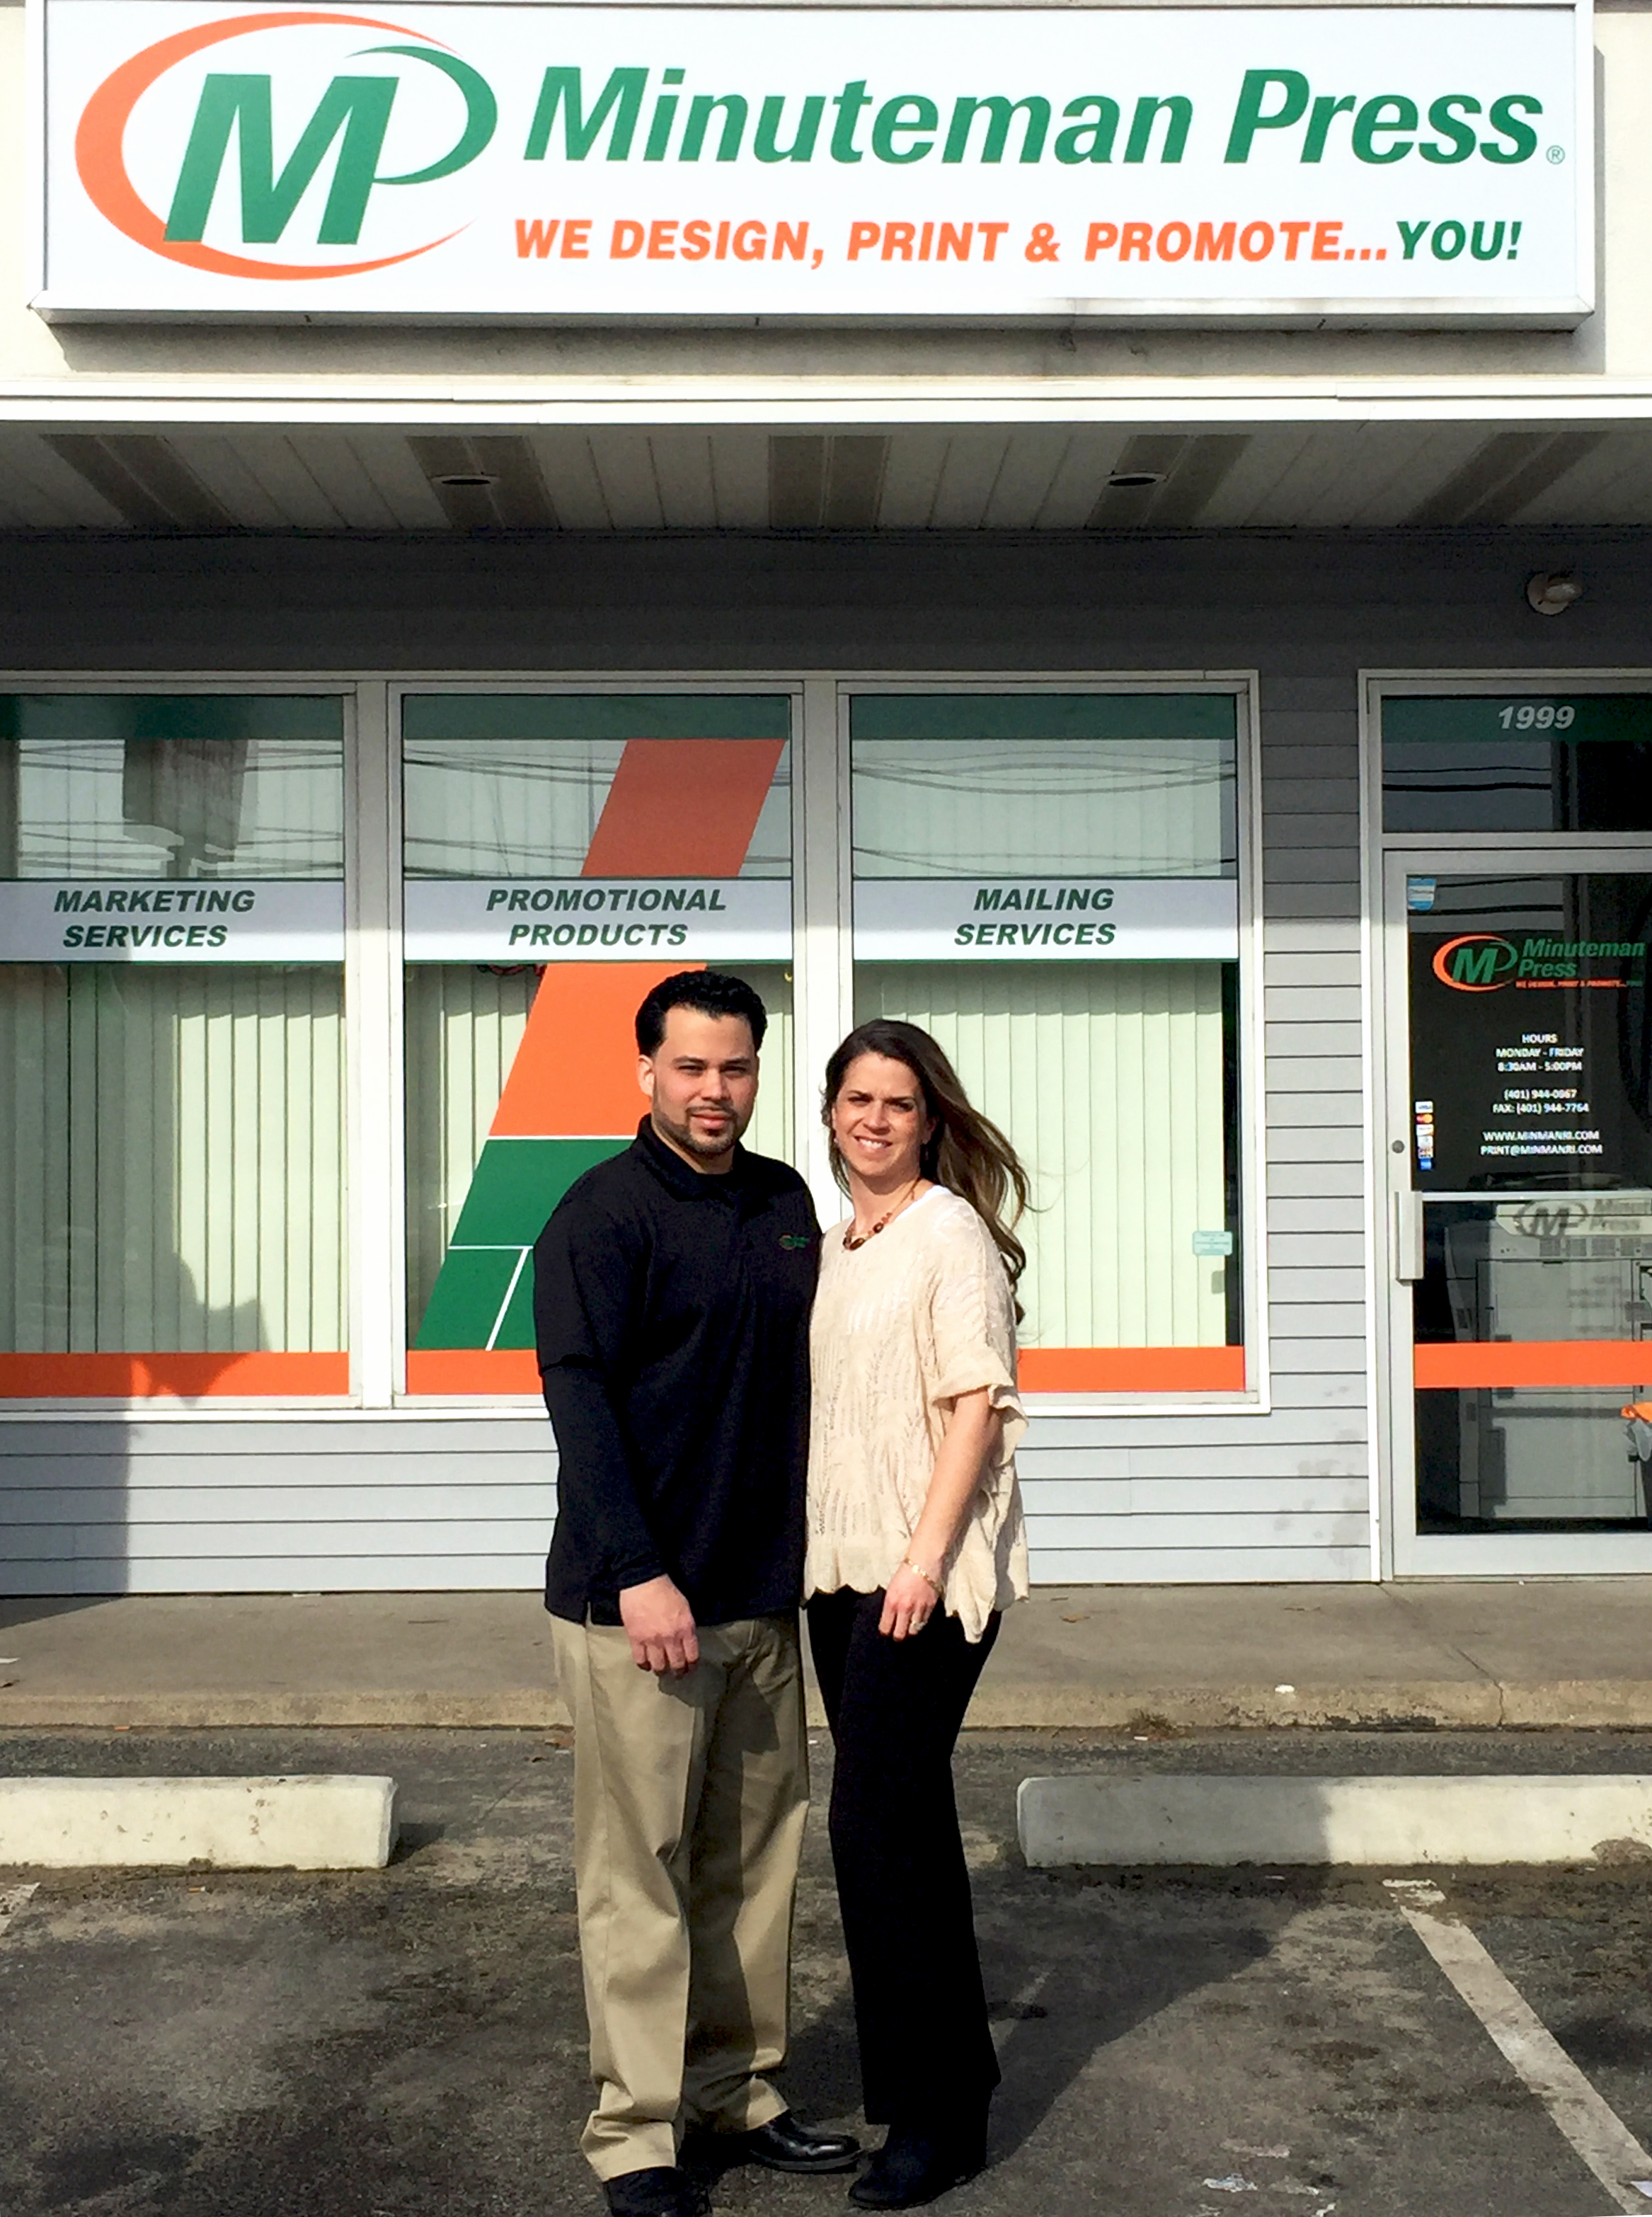 Jorge Leon and Kimberly Sherman-Leon stand in front of their Minuteman Press franchise storefront in Johnston, RI with new signage and window graphics. http://www.minutemanpressfranchise.com